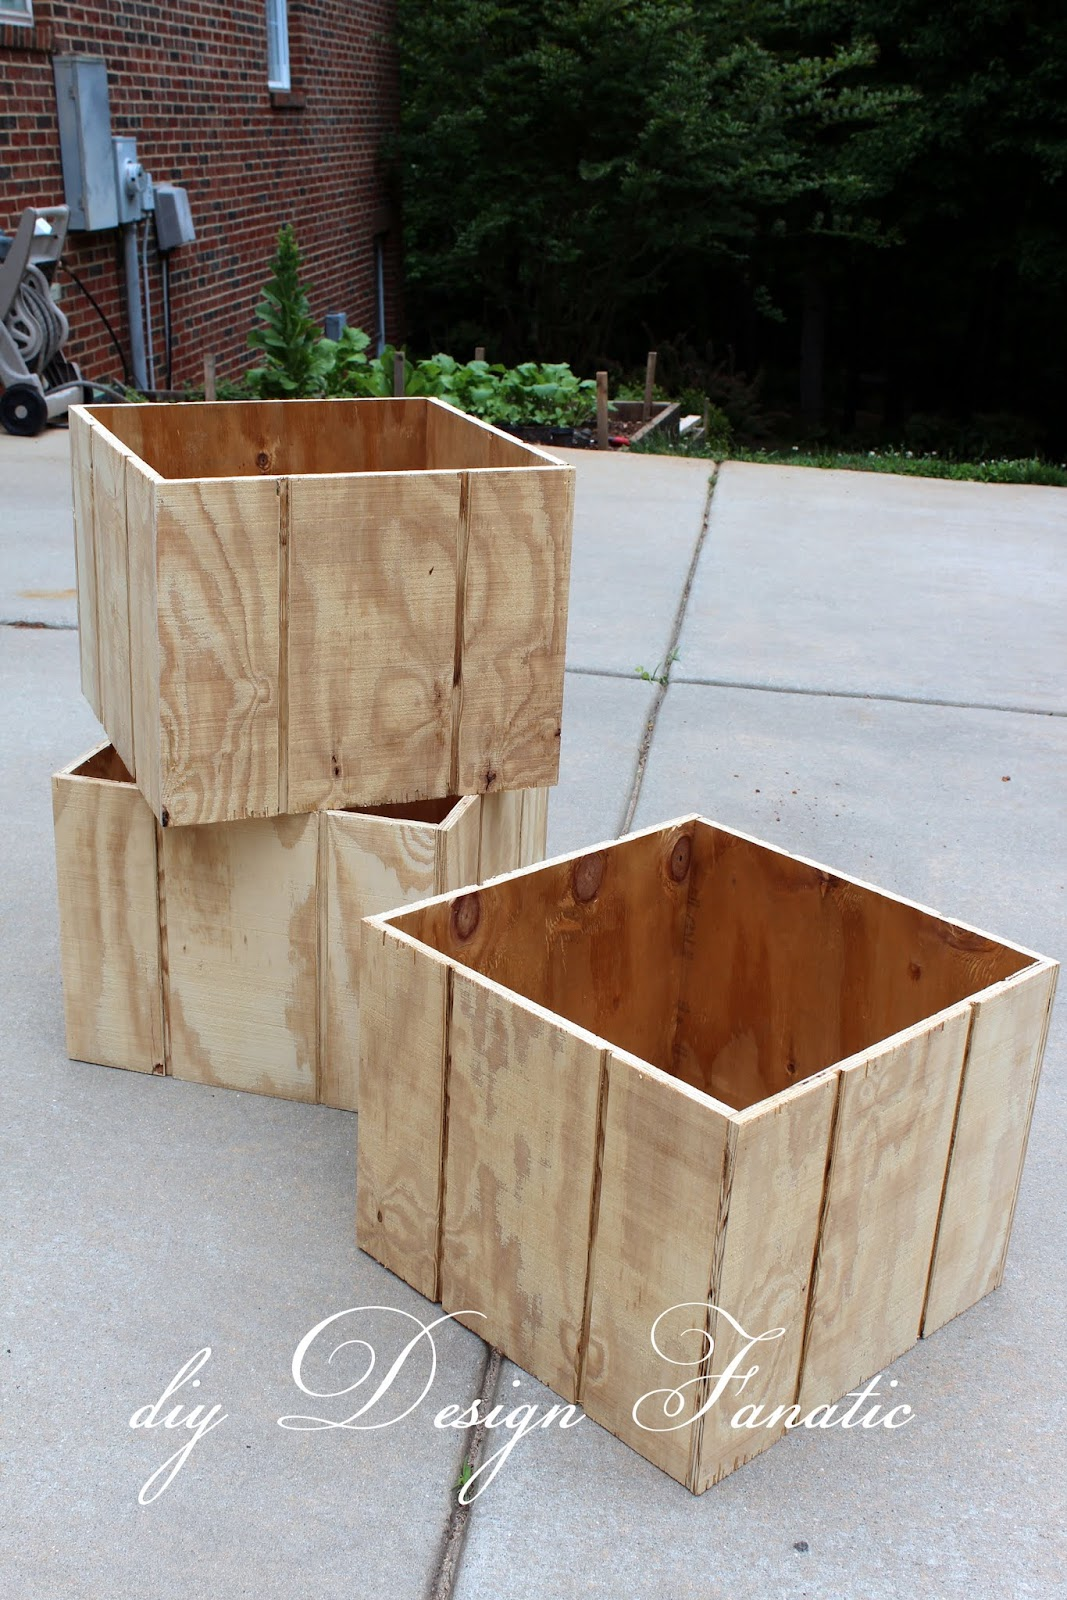 diy design fanatic how to make a wood planter box